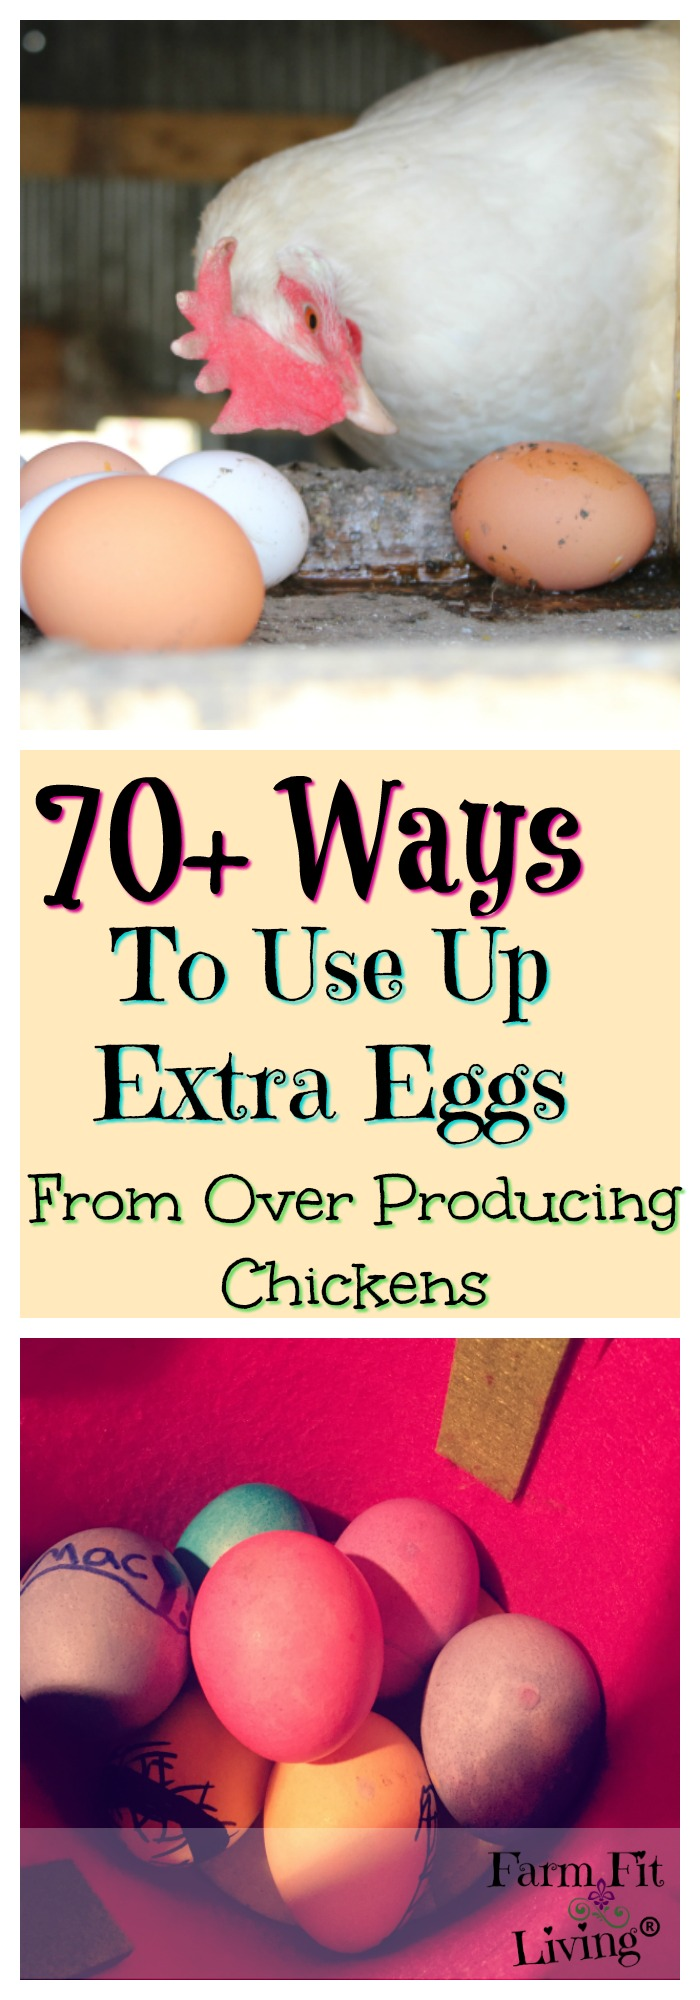 Are you drowning in fresh eggs? Here are 70+ ways to use up extra eggs from your over producing chickens.